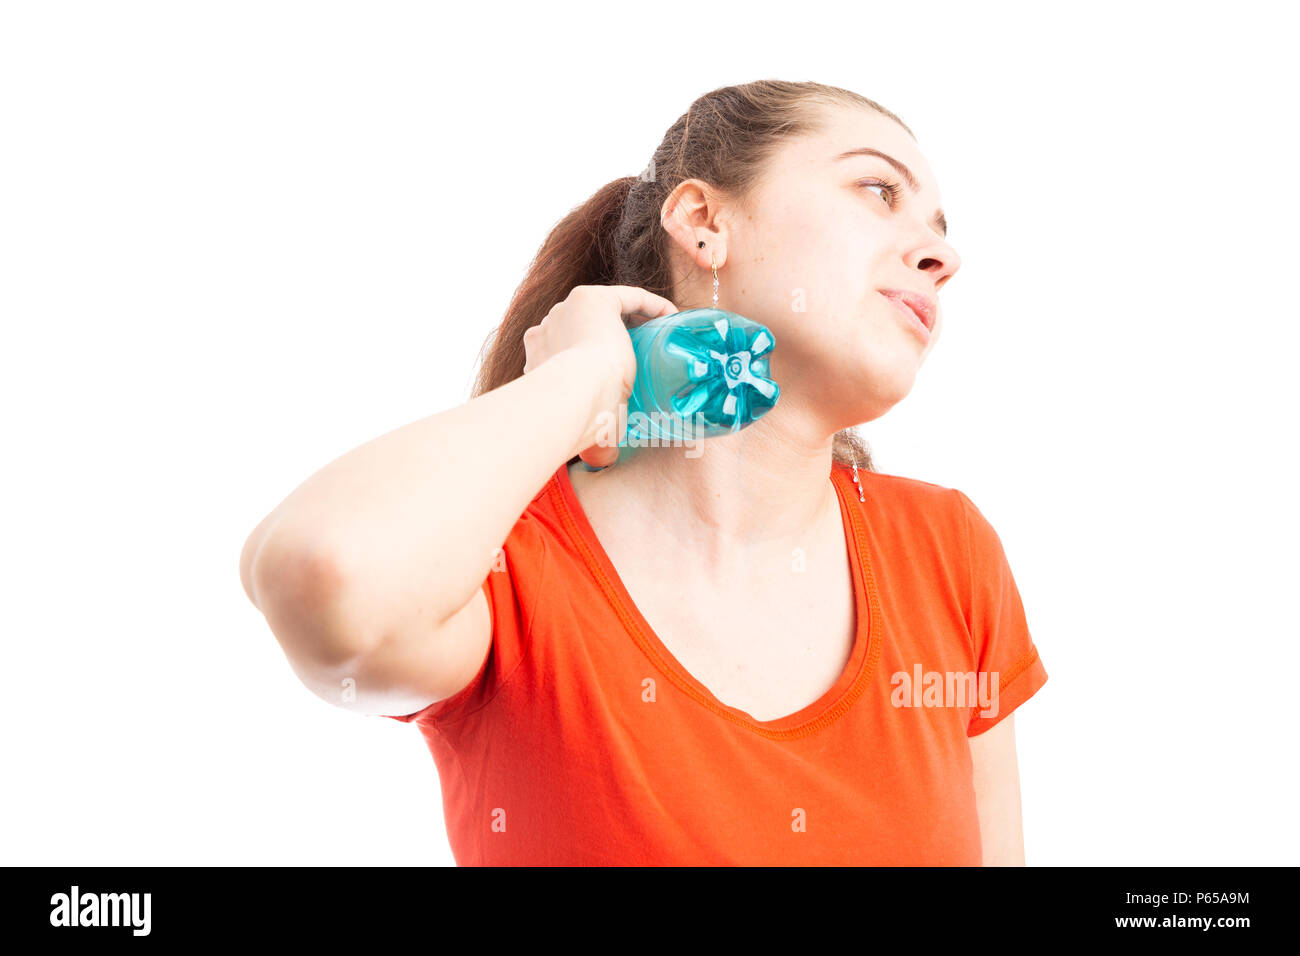 Sweating attractive young woman cooling with bottle of water touching her neck as summer hot temperature concept isolated on white background - Stock Image